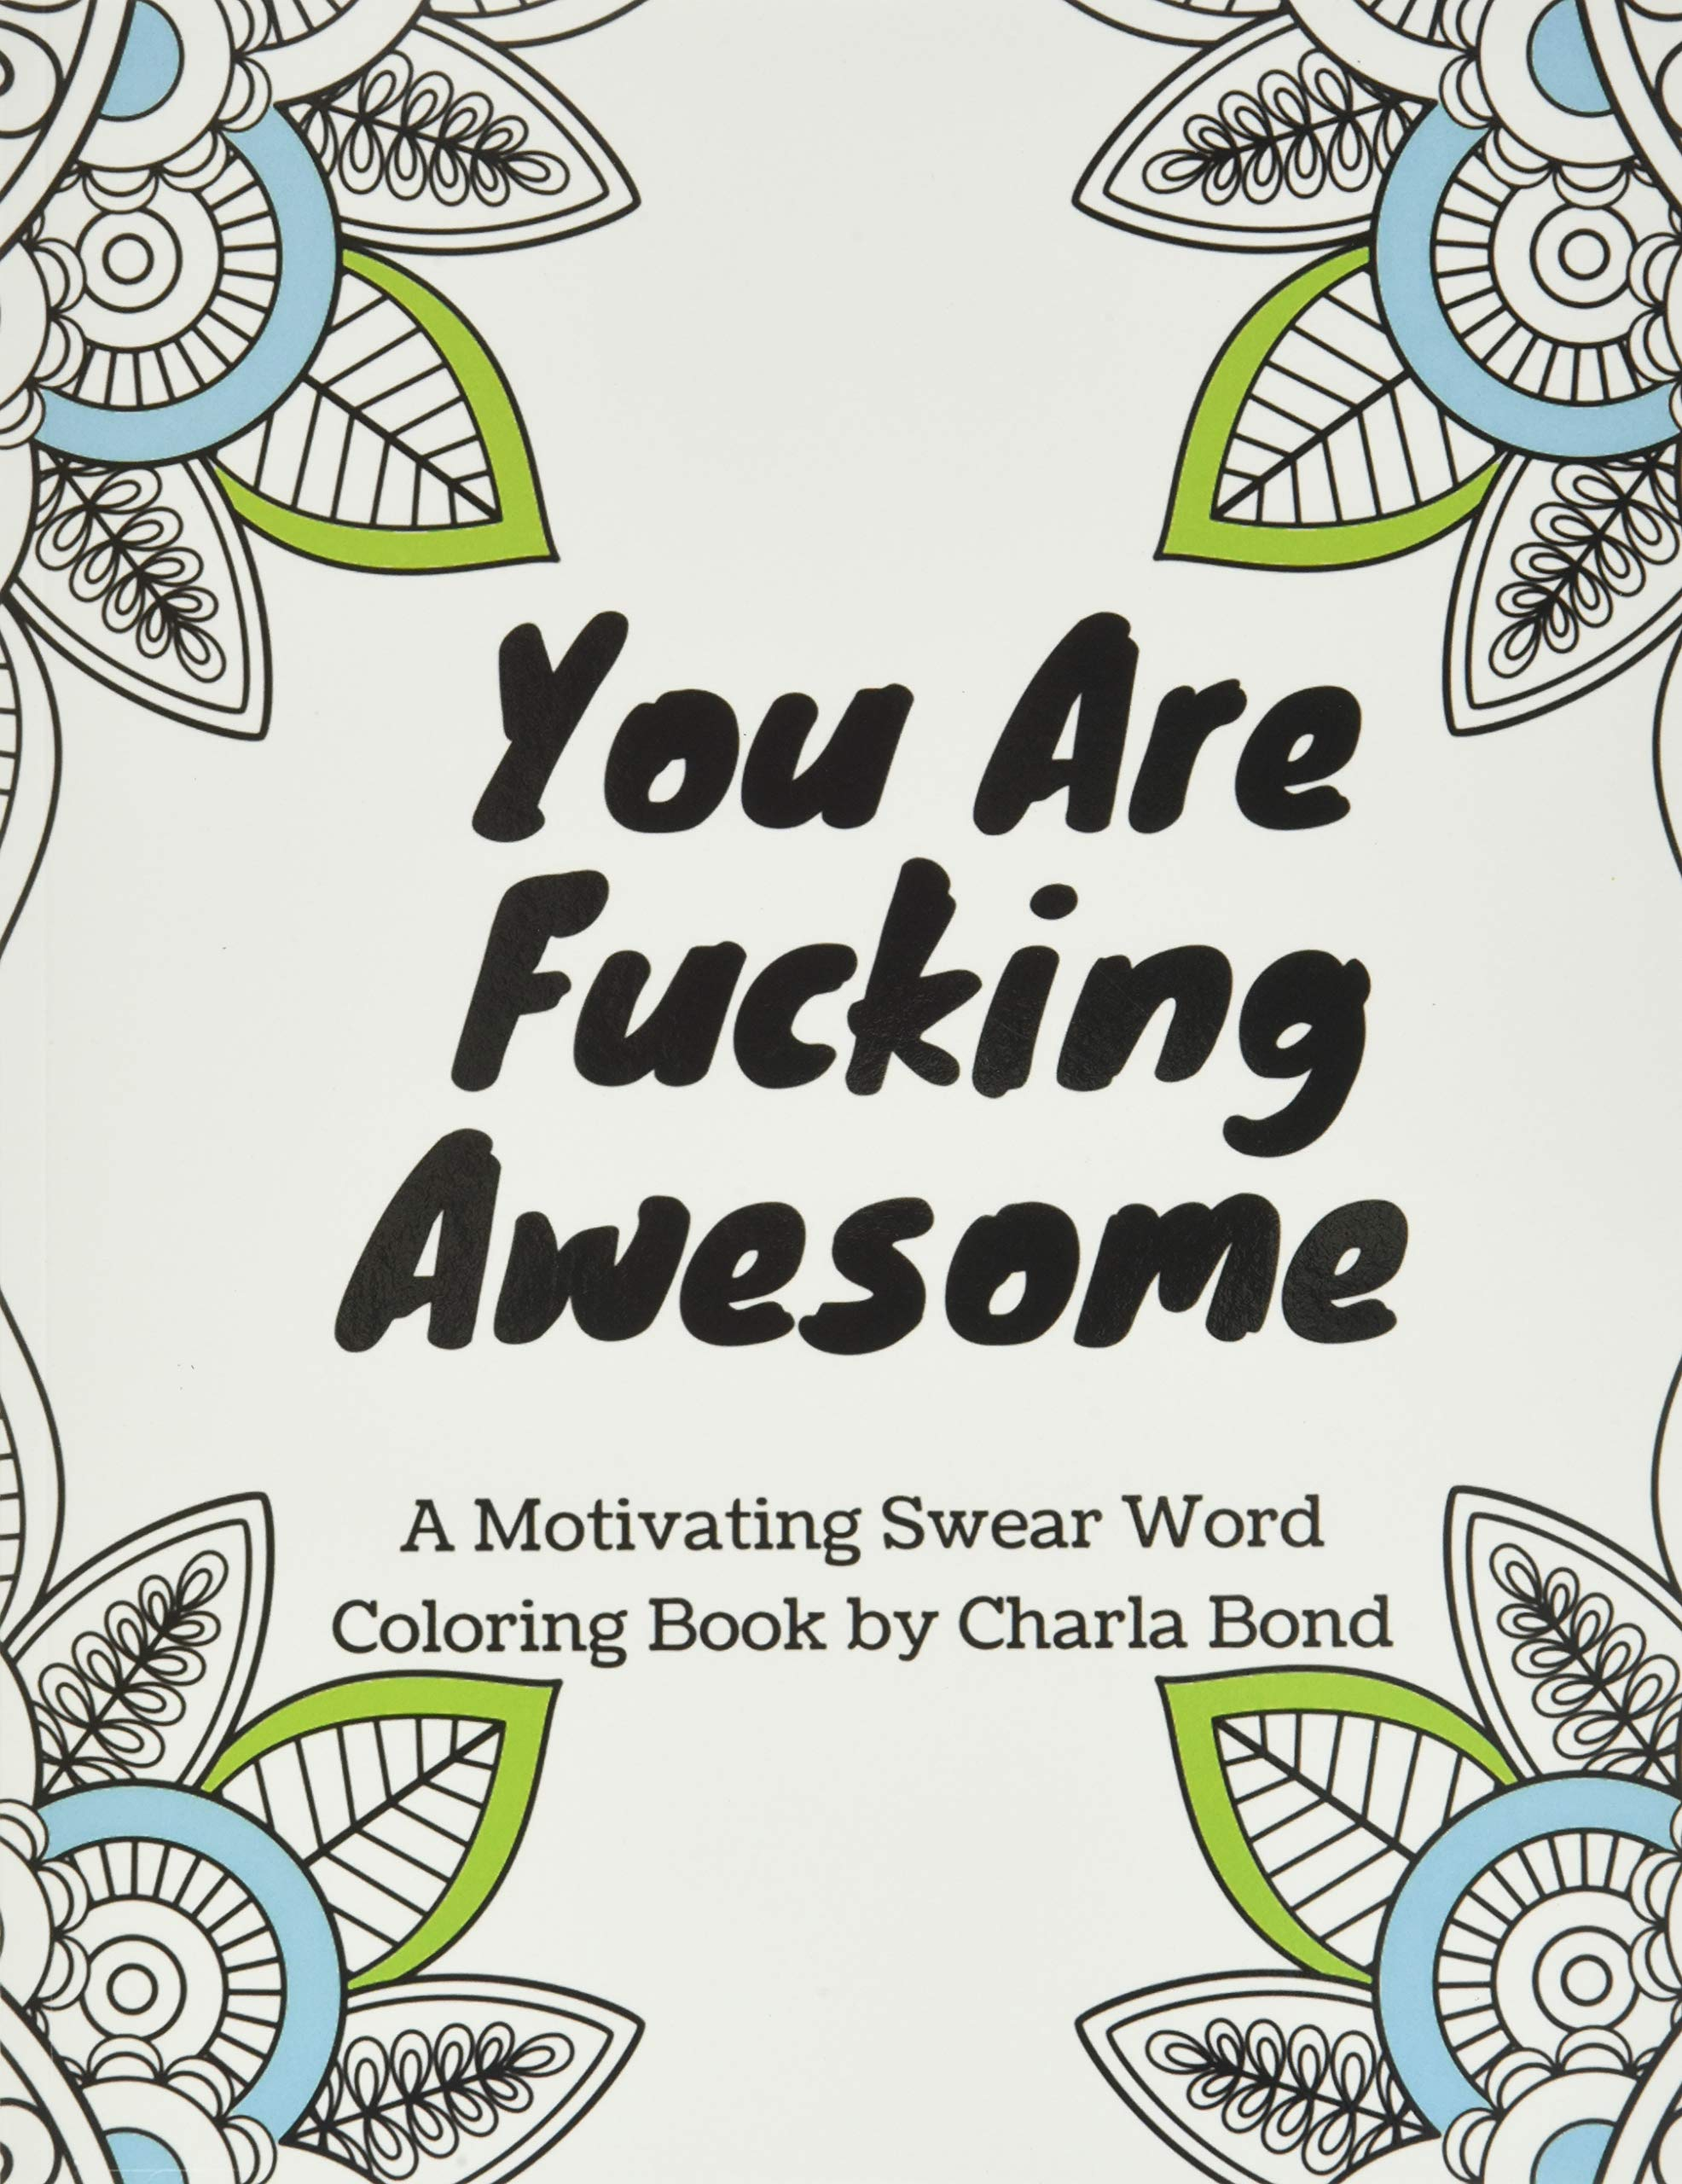 You Are Fucking Awesome: A Motivating Swear Word Coloring Book for Adults